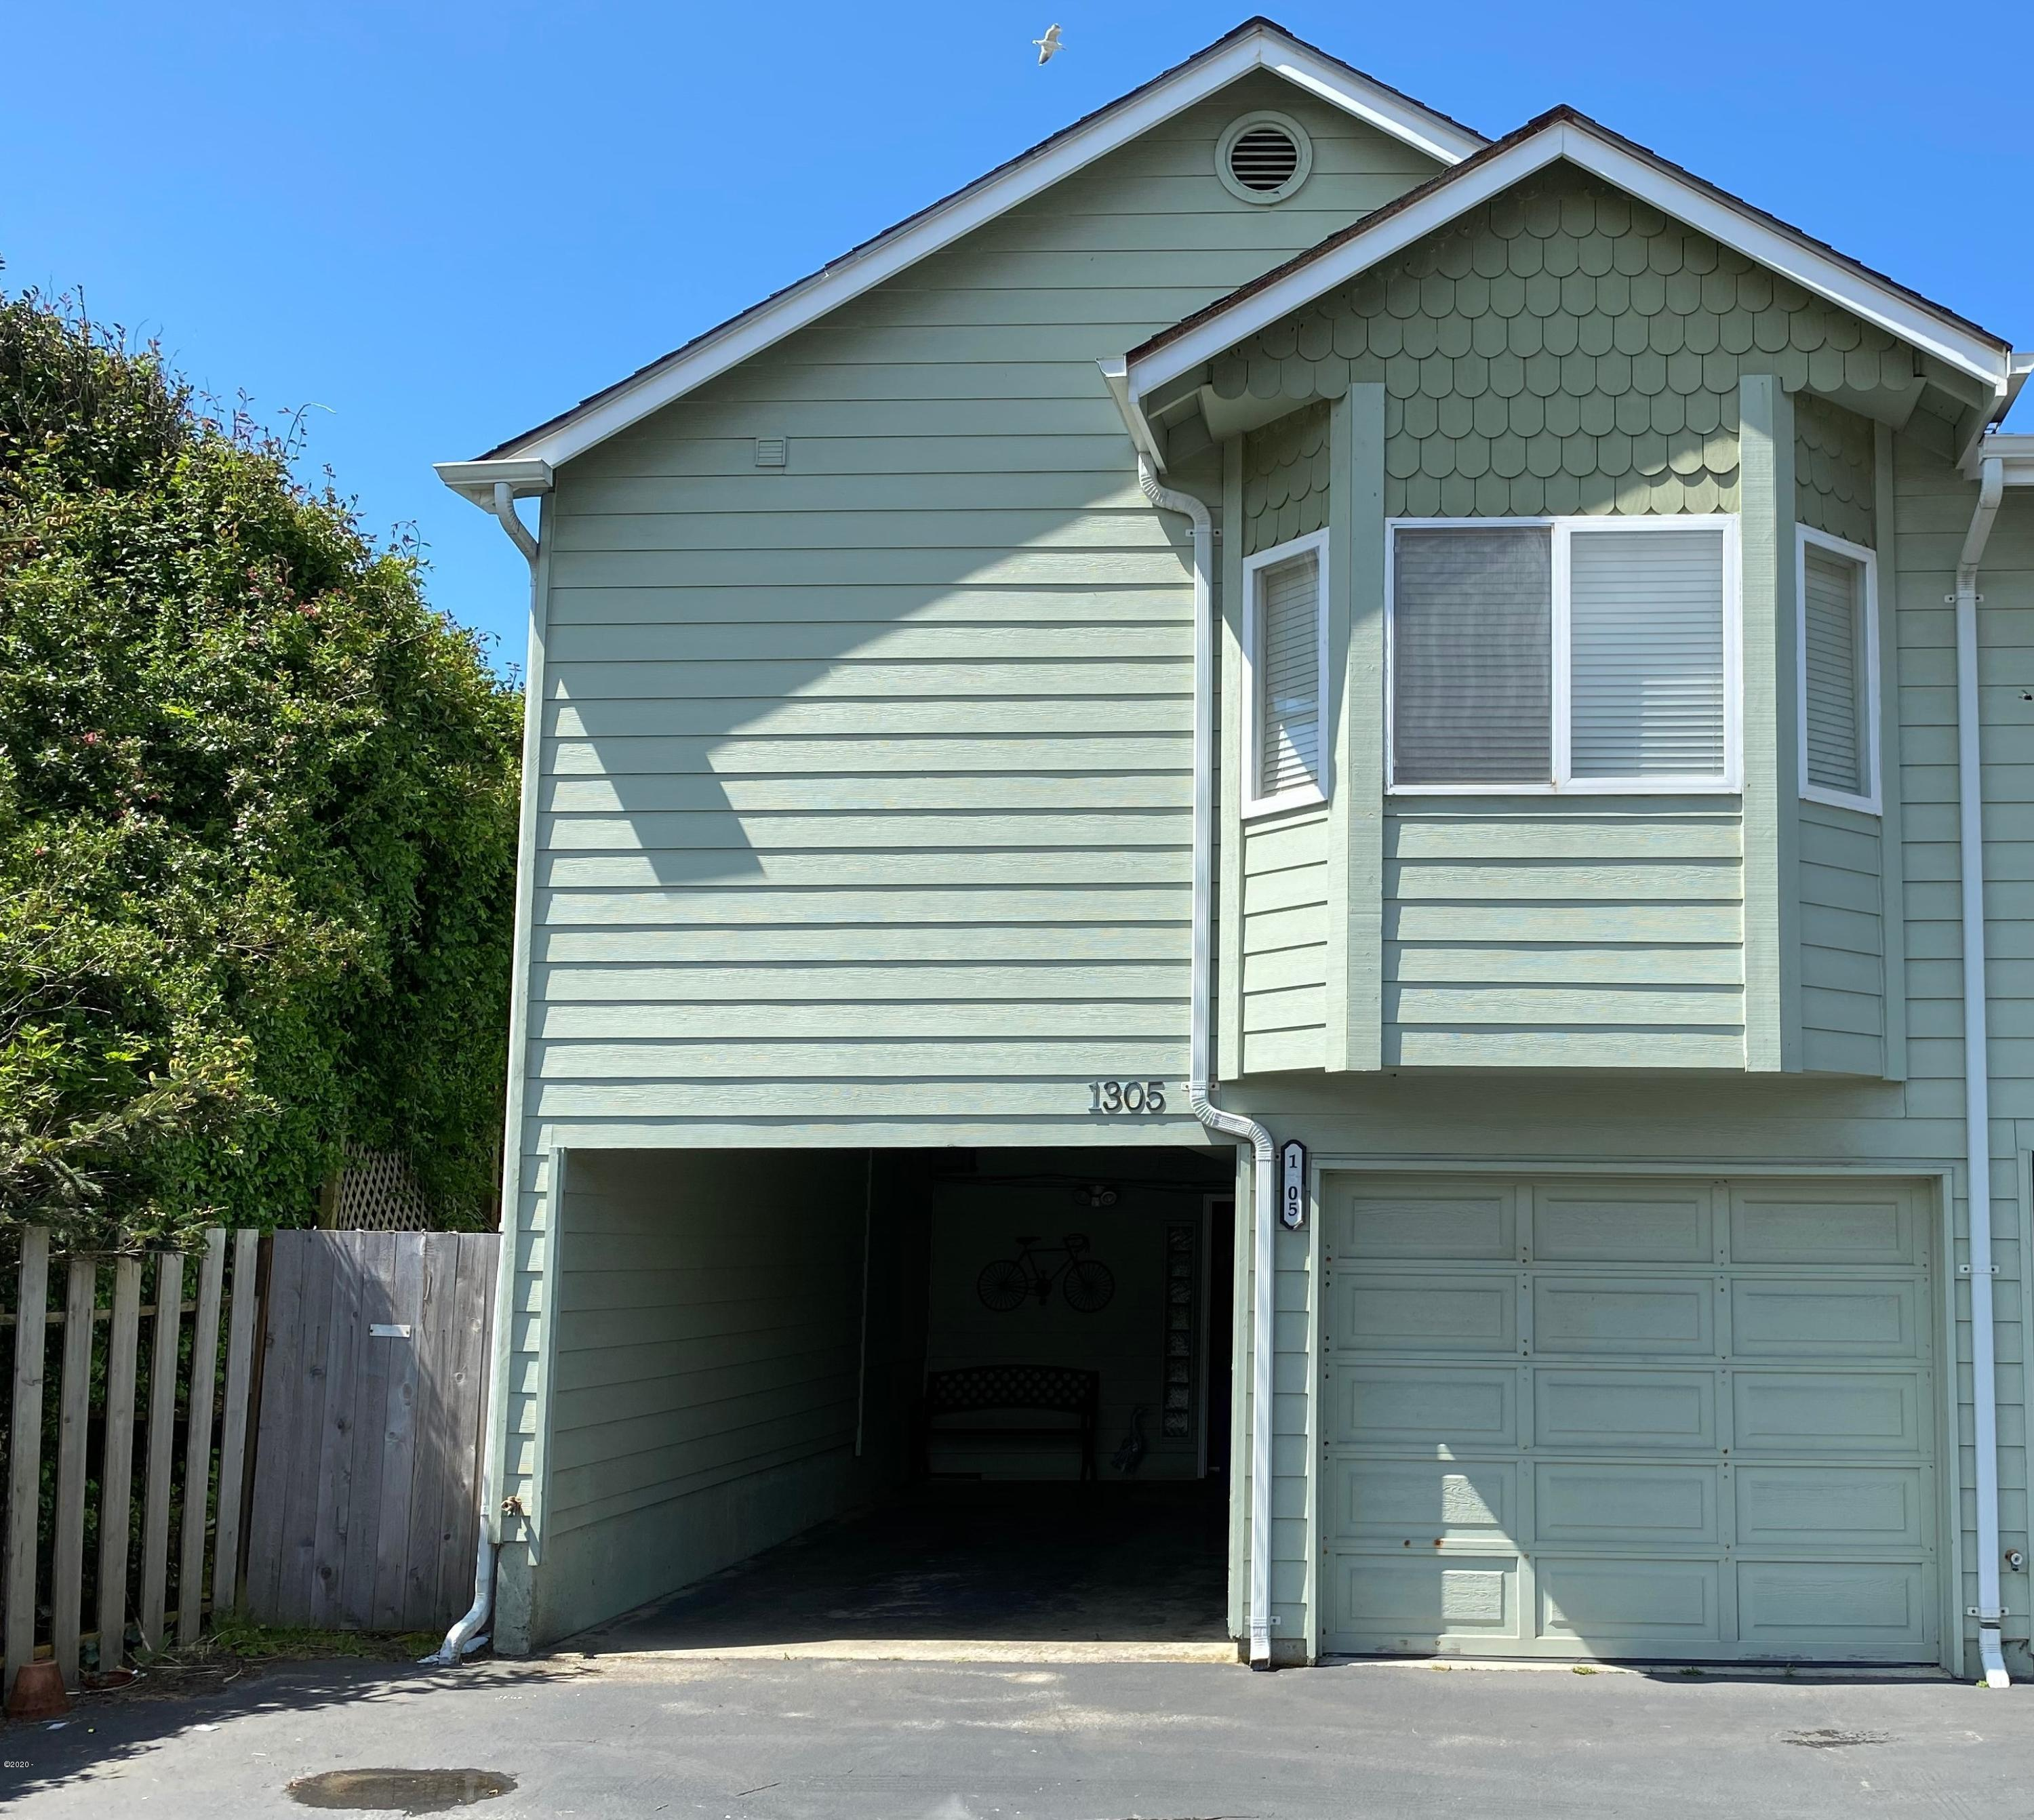 1305 NW Harbor Ave, Lincoln City, OR 97367 - Exterior photo 5.8.20